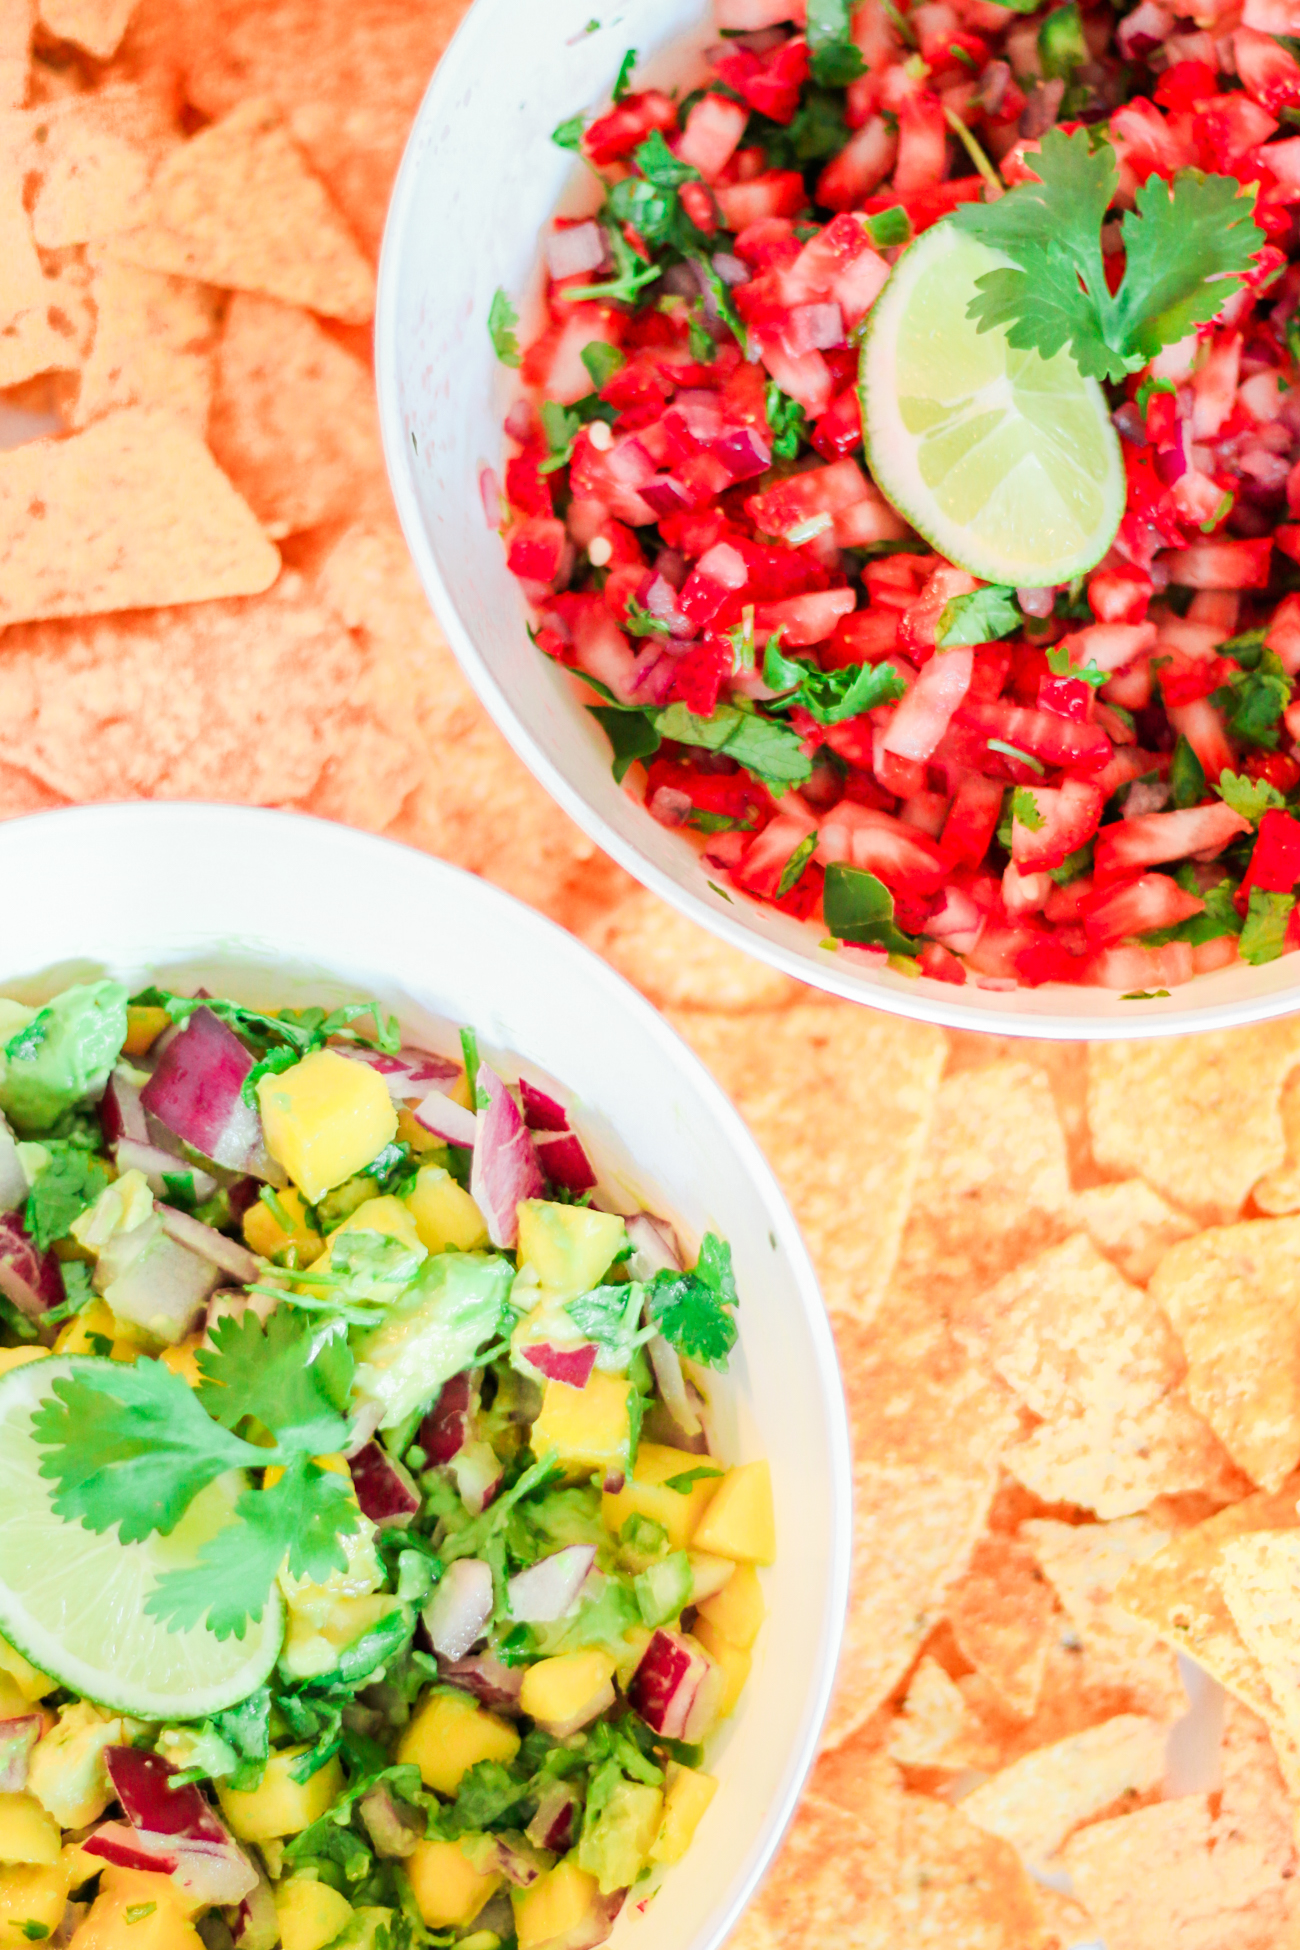 Two Quick Fresh Salsa Recipes for Your Cinco de Mayo Fiesta by southern lifestyle blogger Stephanie Ziajka from Diary of a Debutante, strawberry jalapeno salsa recipe, strawberry and jalapeno salsa recipe, homemade salsa recipe, easy Cinco de Mayo salsa recipe, fresh mango habanero salsa recipe, quick mango and avocado salsa